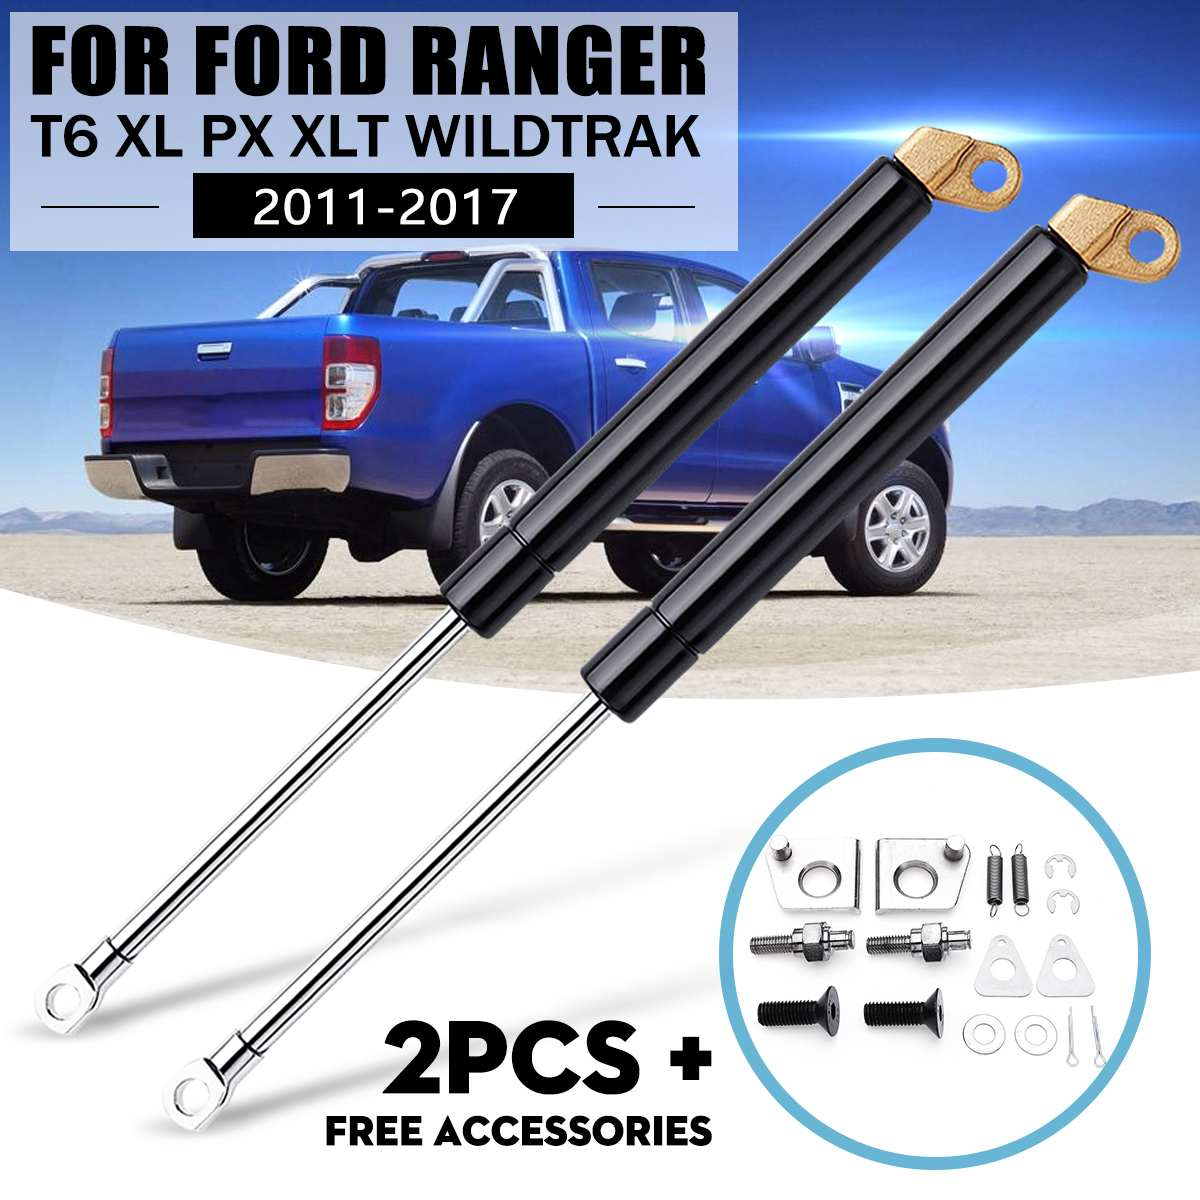 1 Pair Rear Gate Strut Shock Gas Slow Down Left And Right For Ford For Ranger T6 Xl Px Xlt Wildtrak 2012 2013 2014 2015 2016